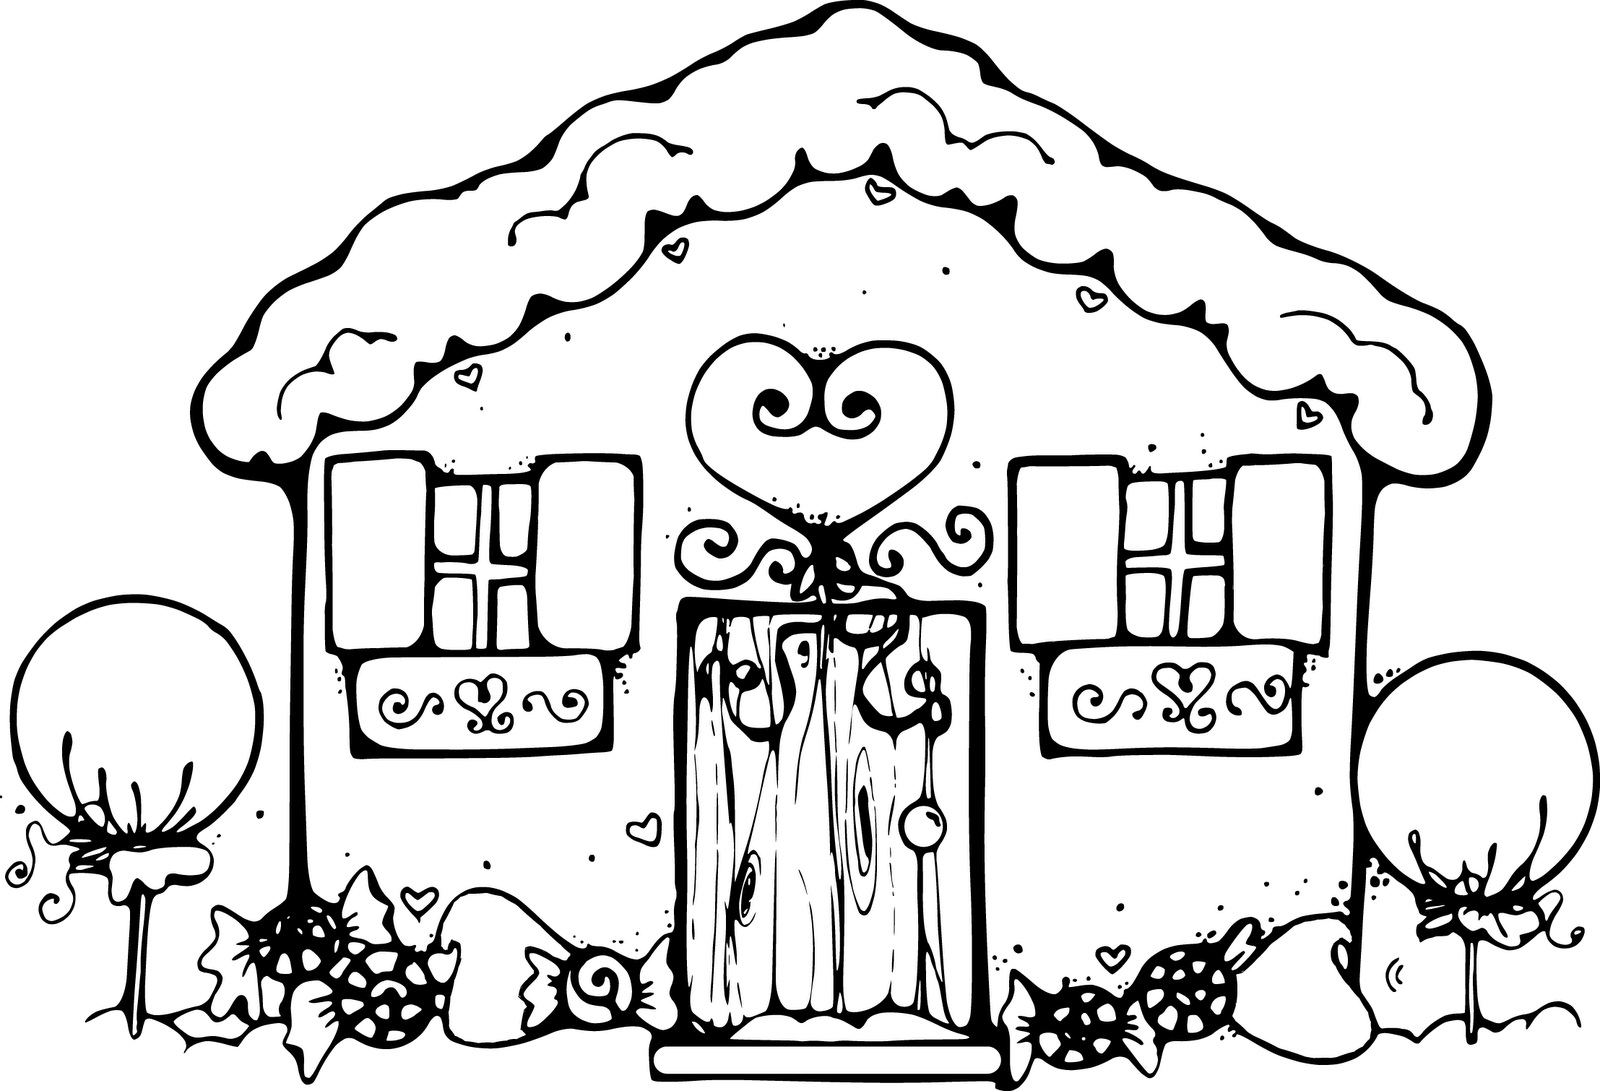 coloring sheets house house coloring pages to download and print for free house sheets coloring